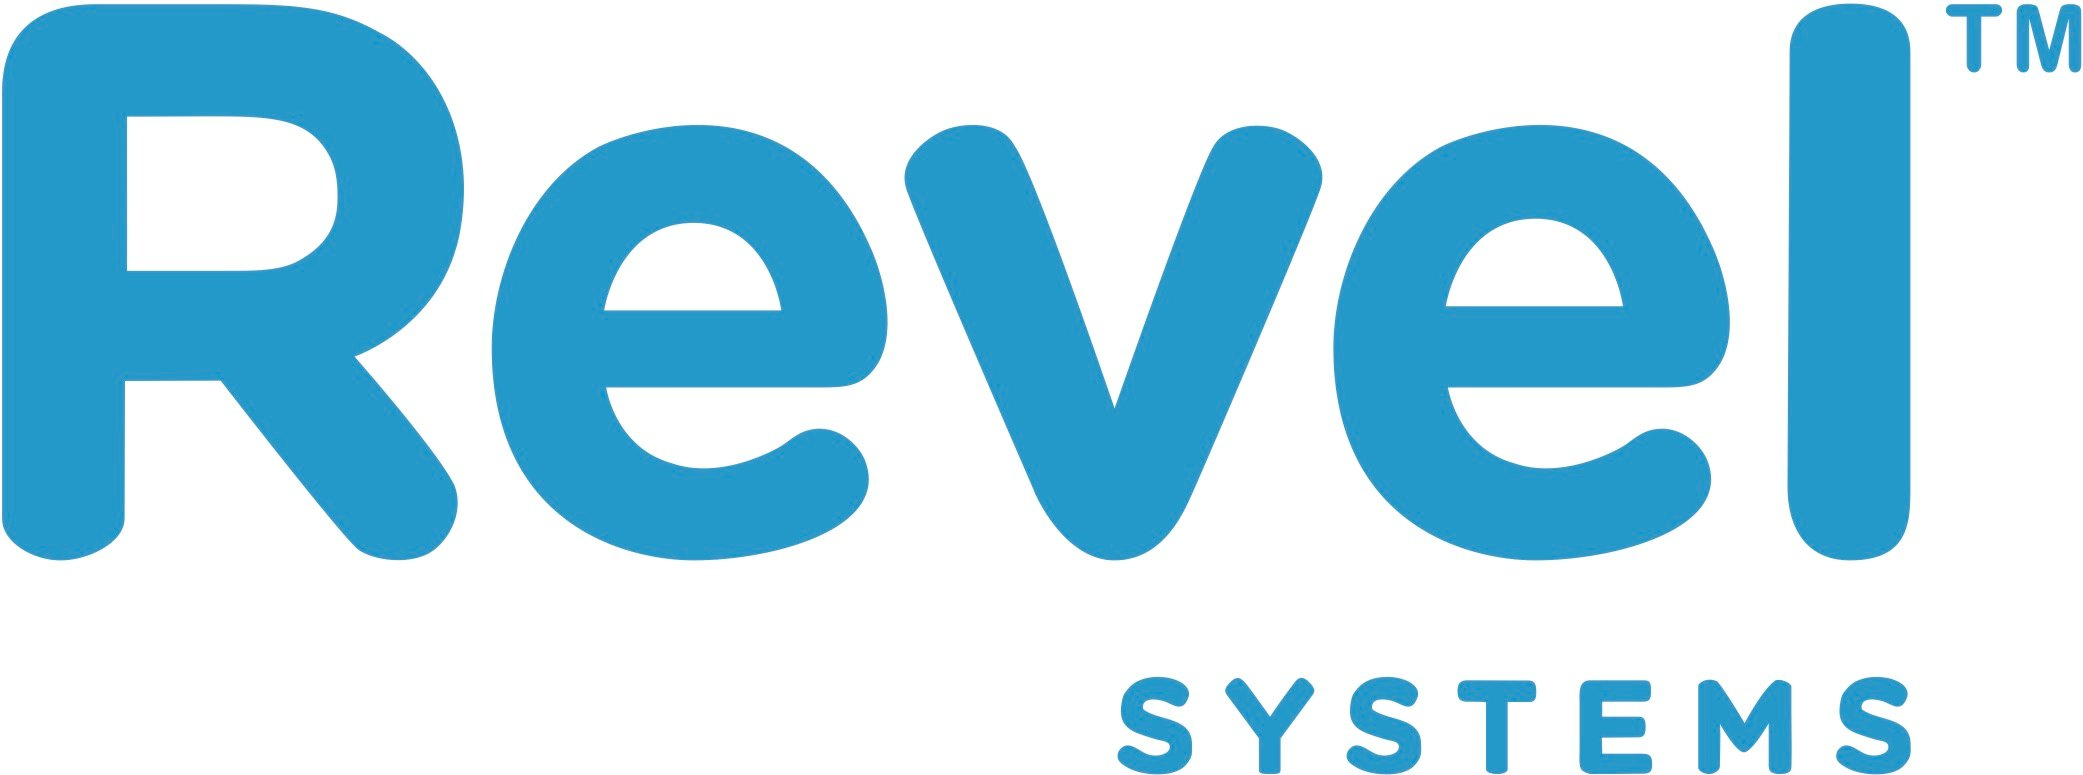 Revel Systems Jobs, Reviews & Salaries - Hired